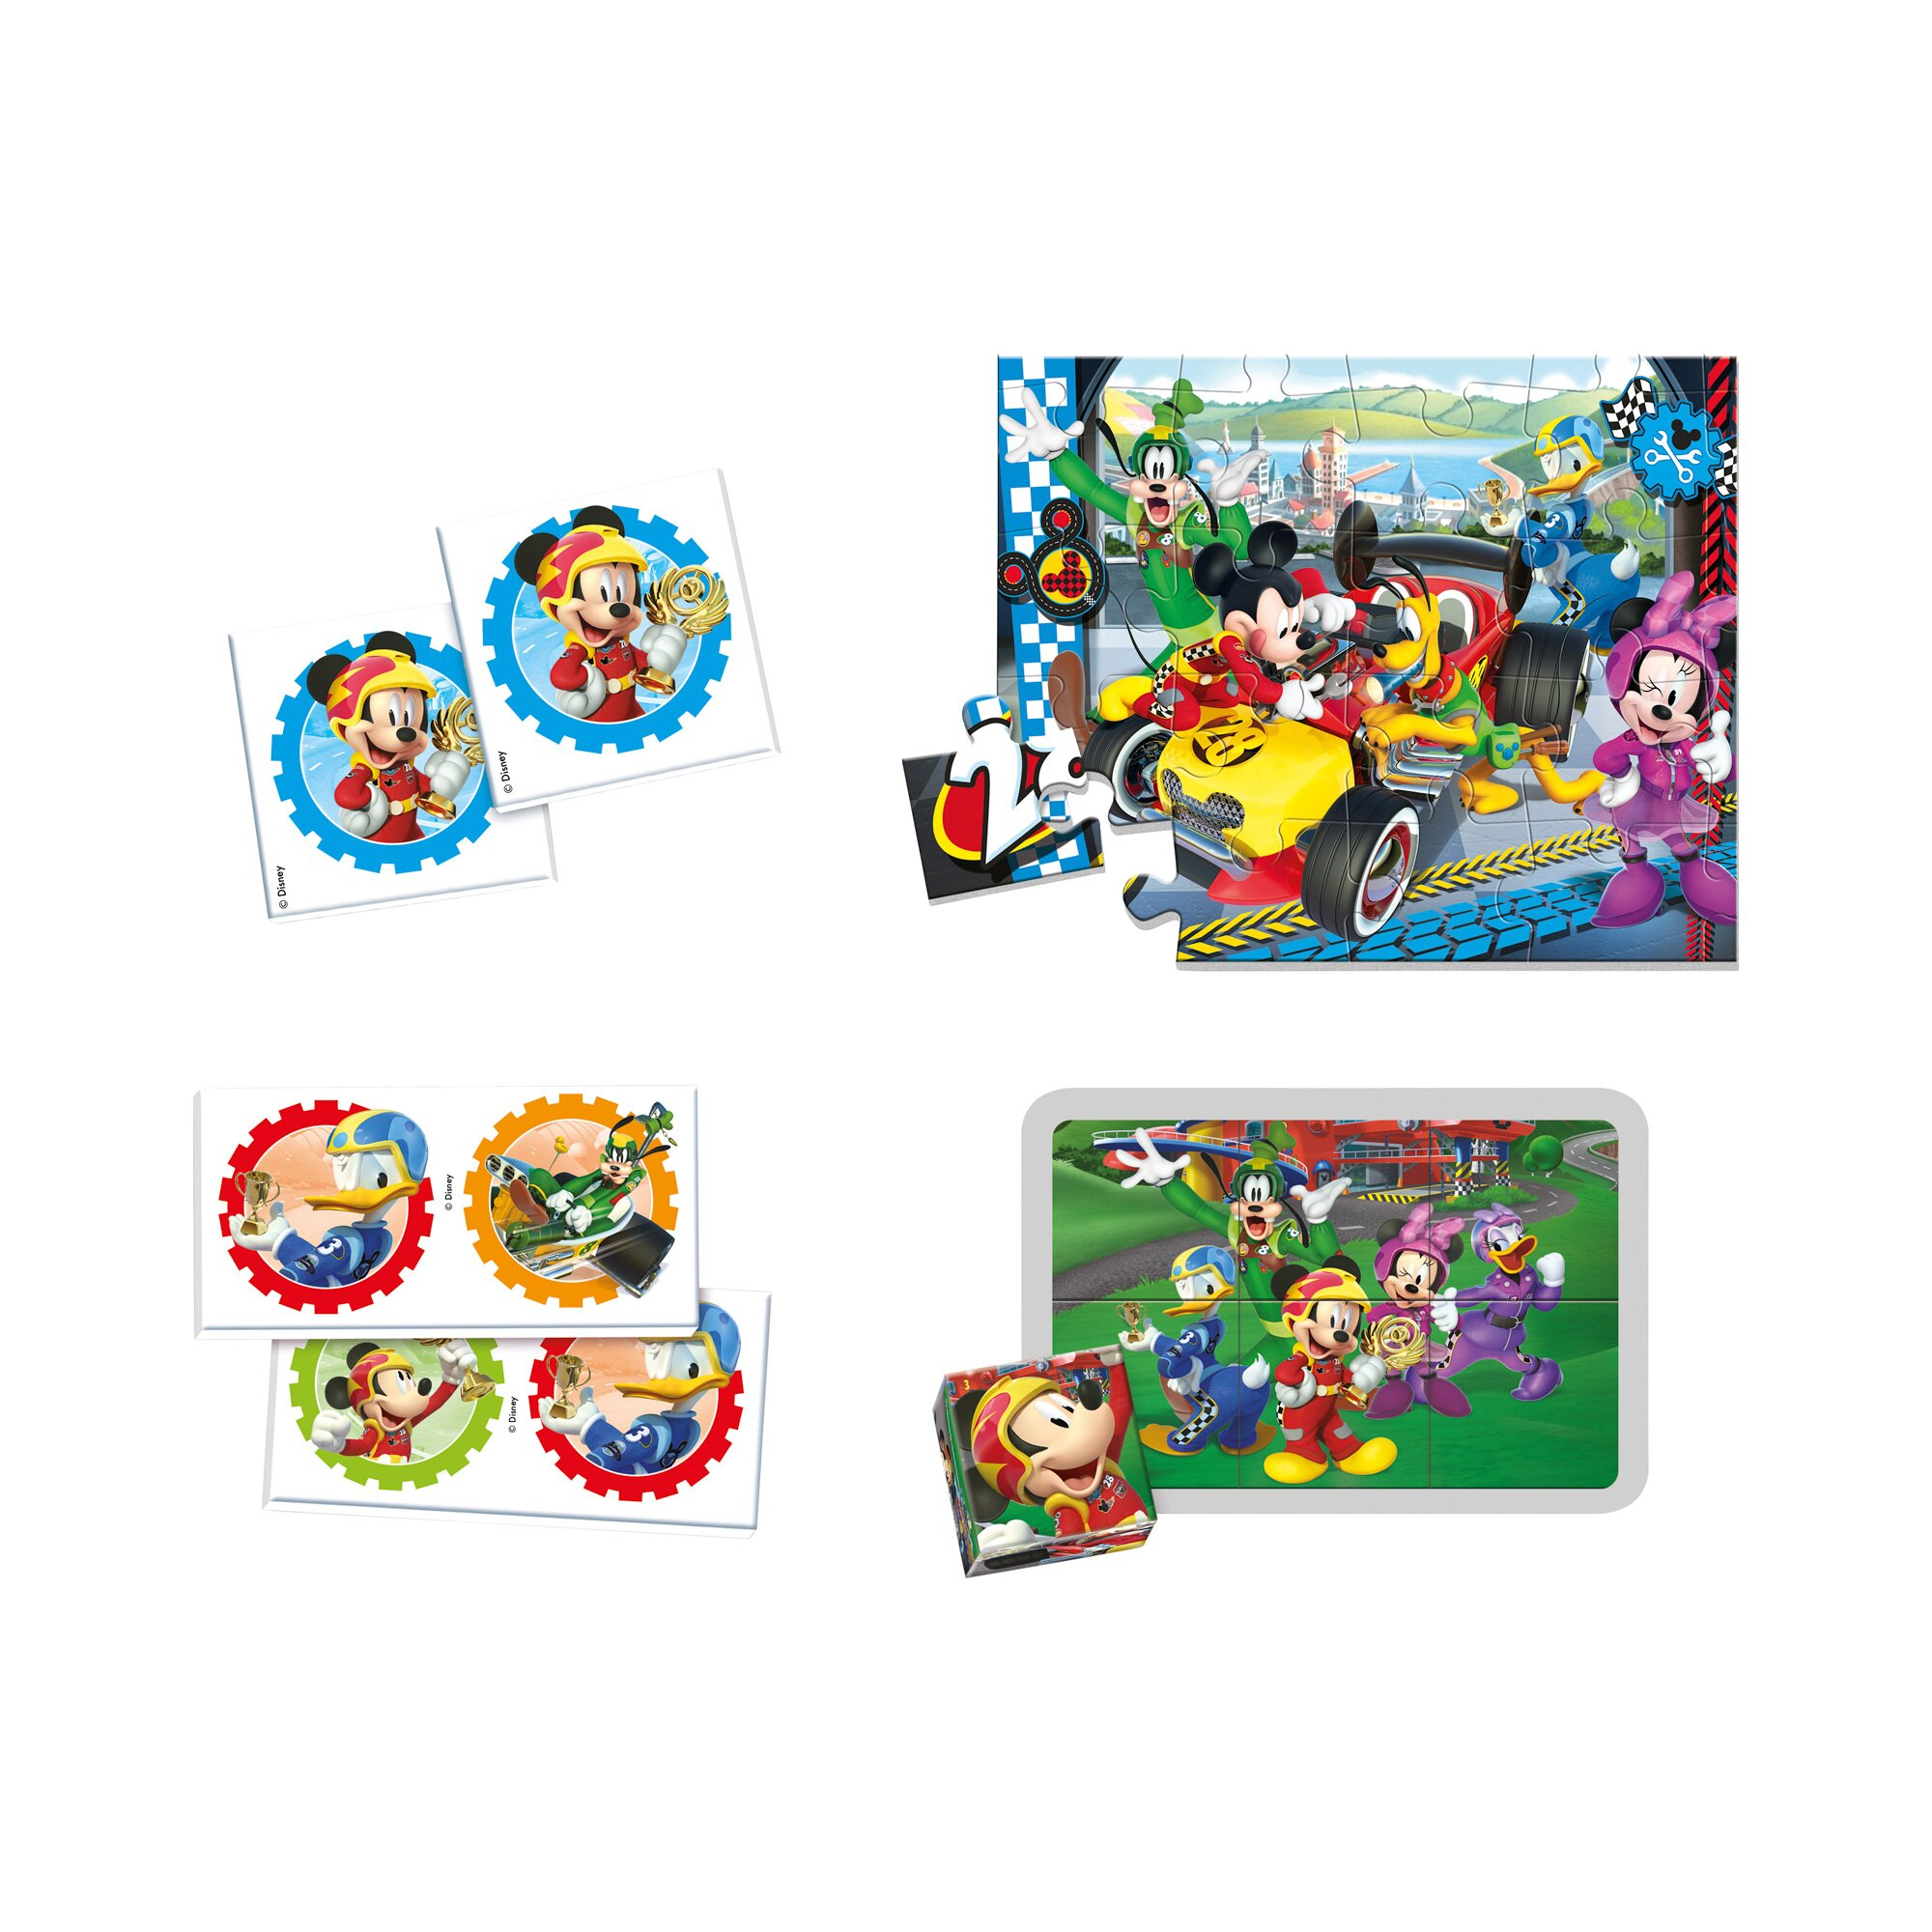 mickey-and-the-roadster-racers-spielesammlung-edukit-4-in-1